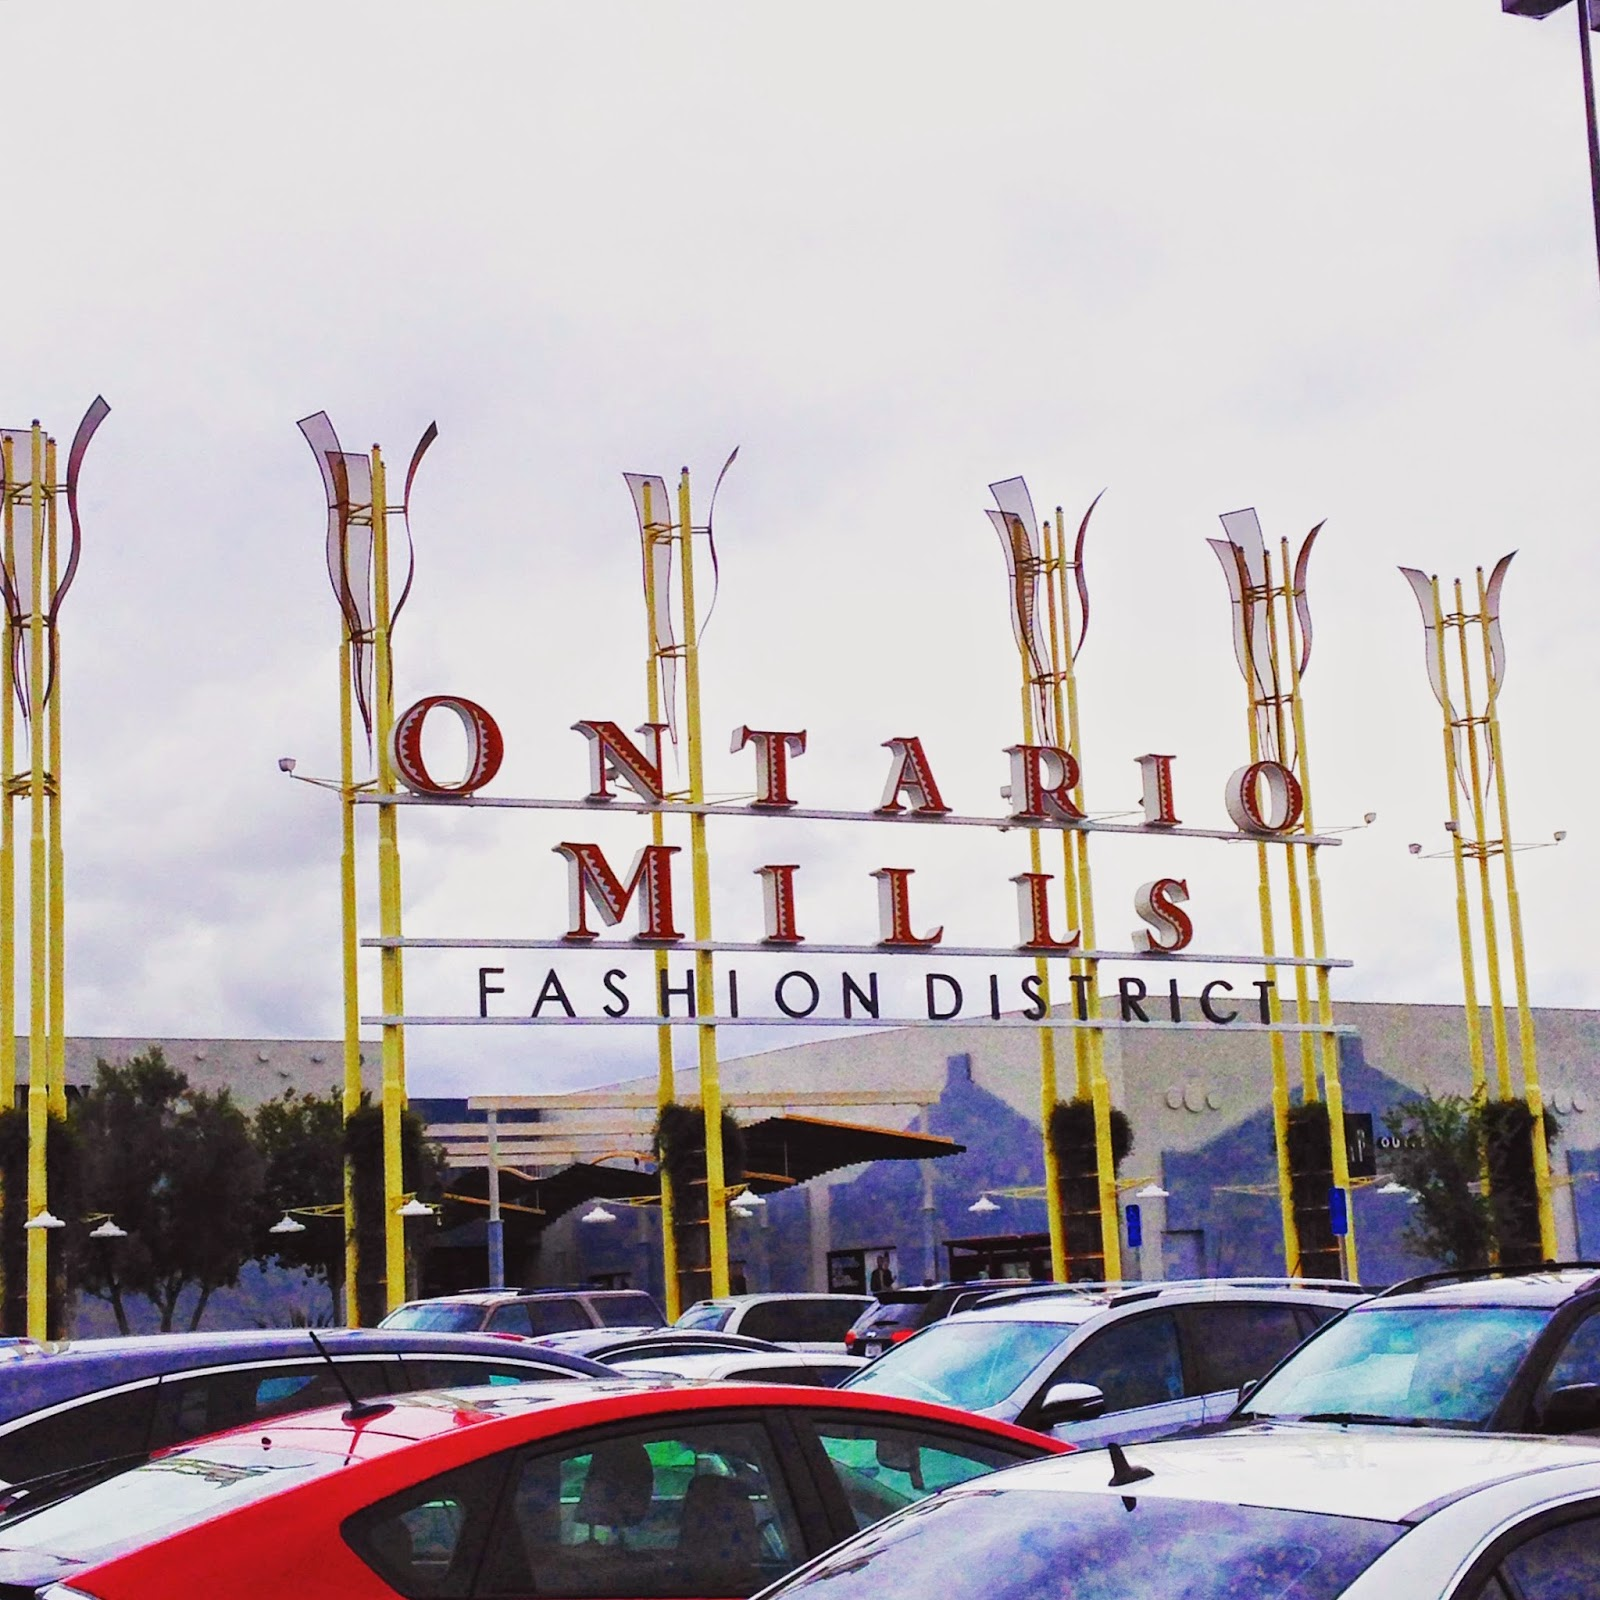 Outlet Center Mall Ontario Mills Ping California Cidstylefile